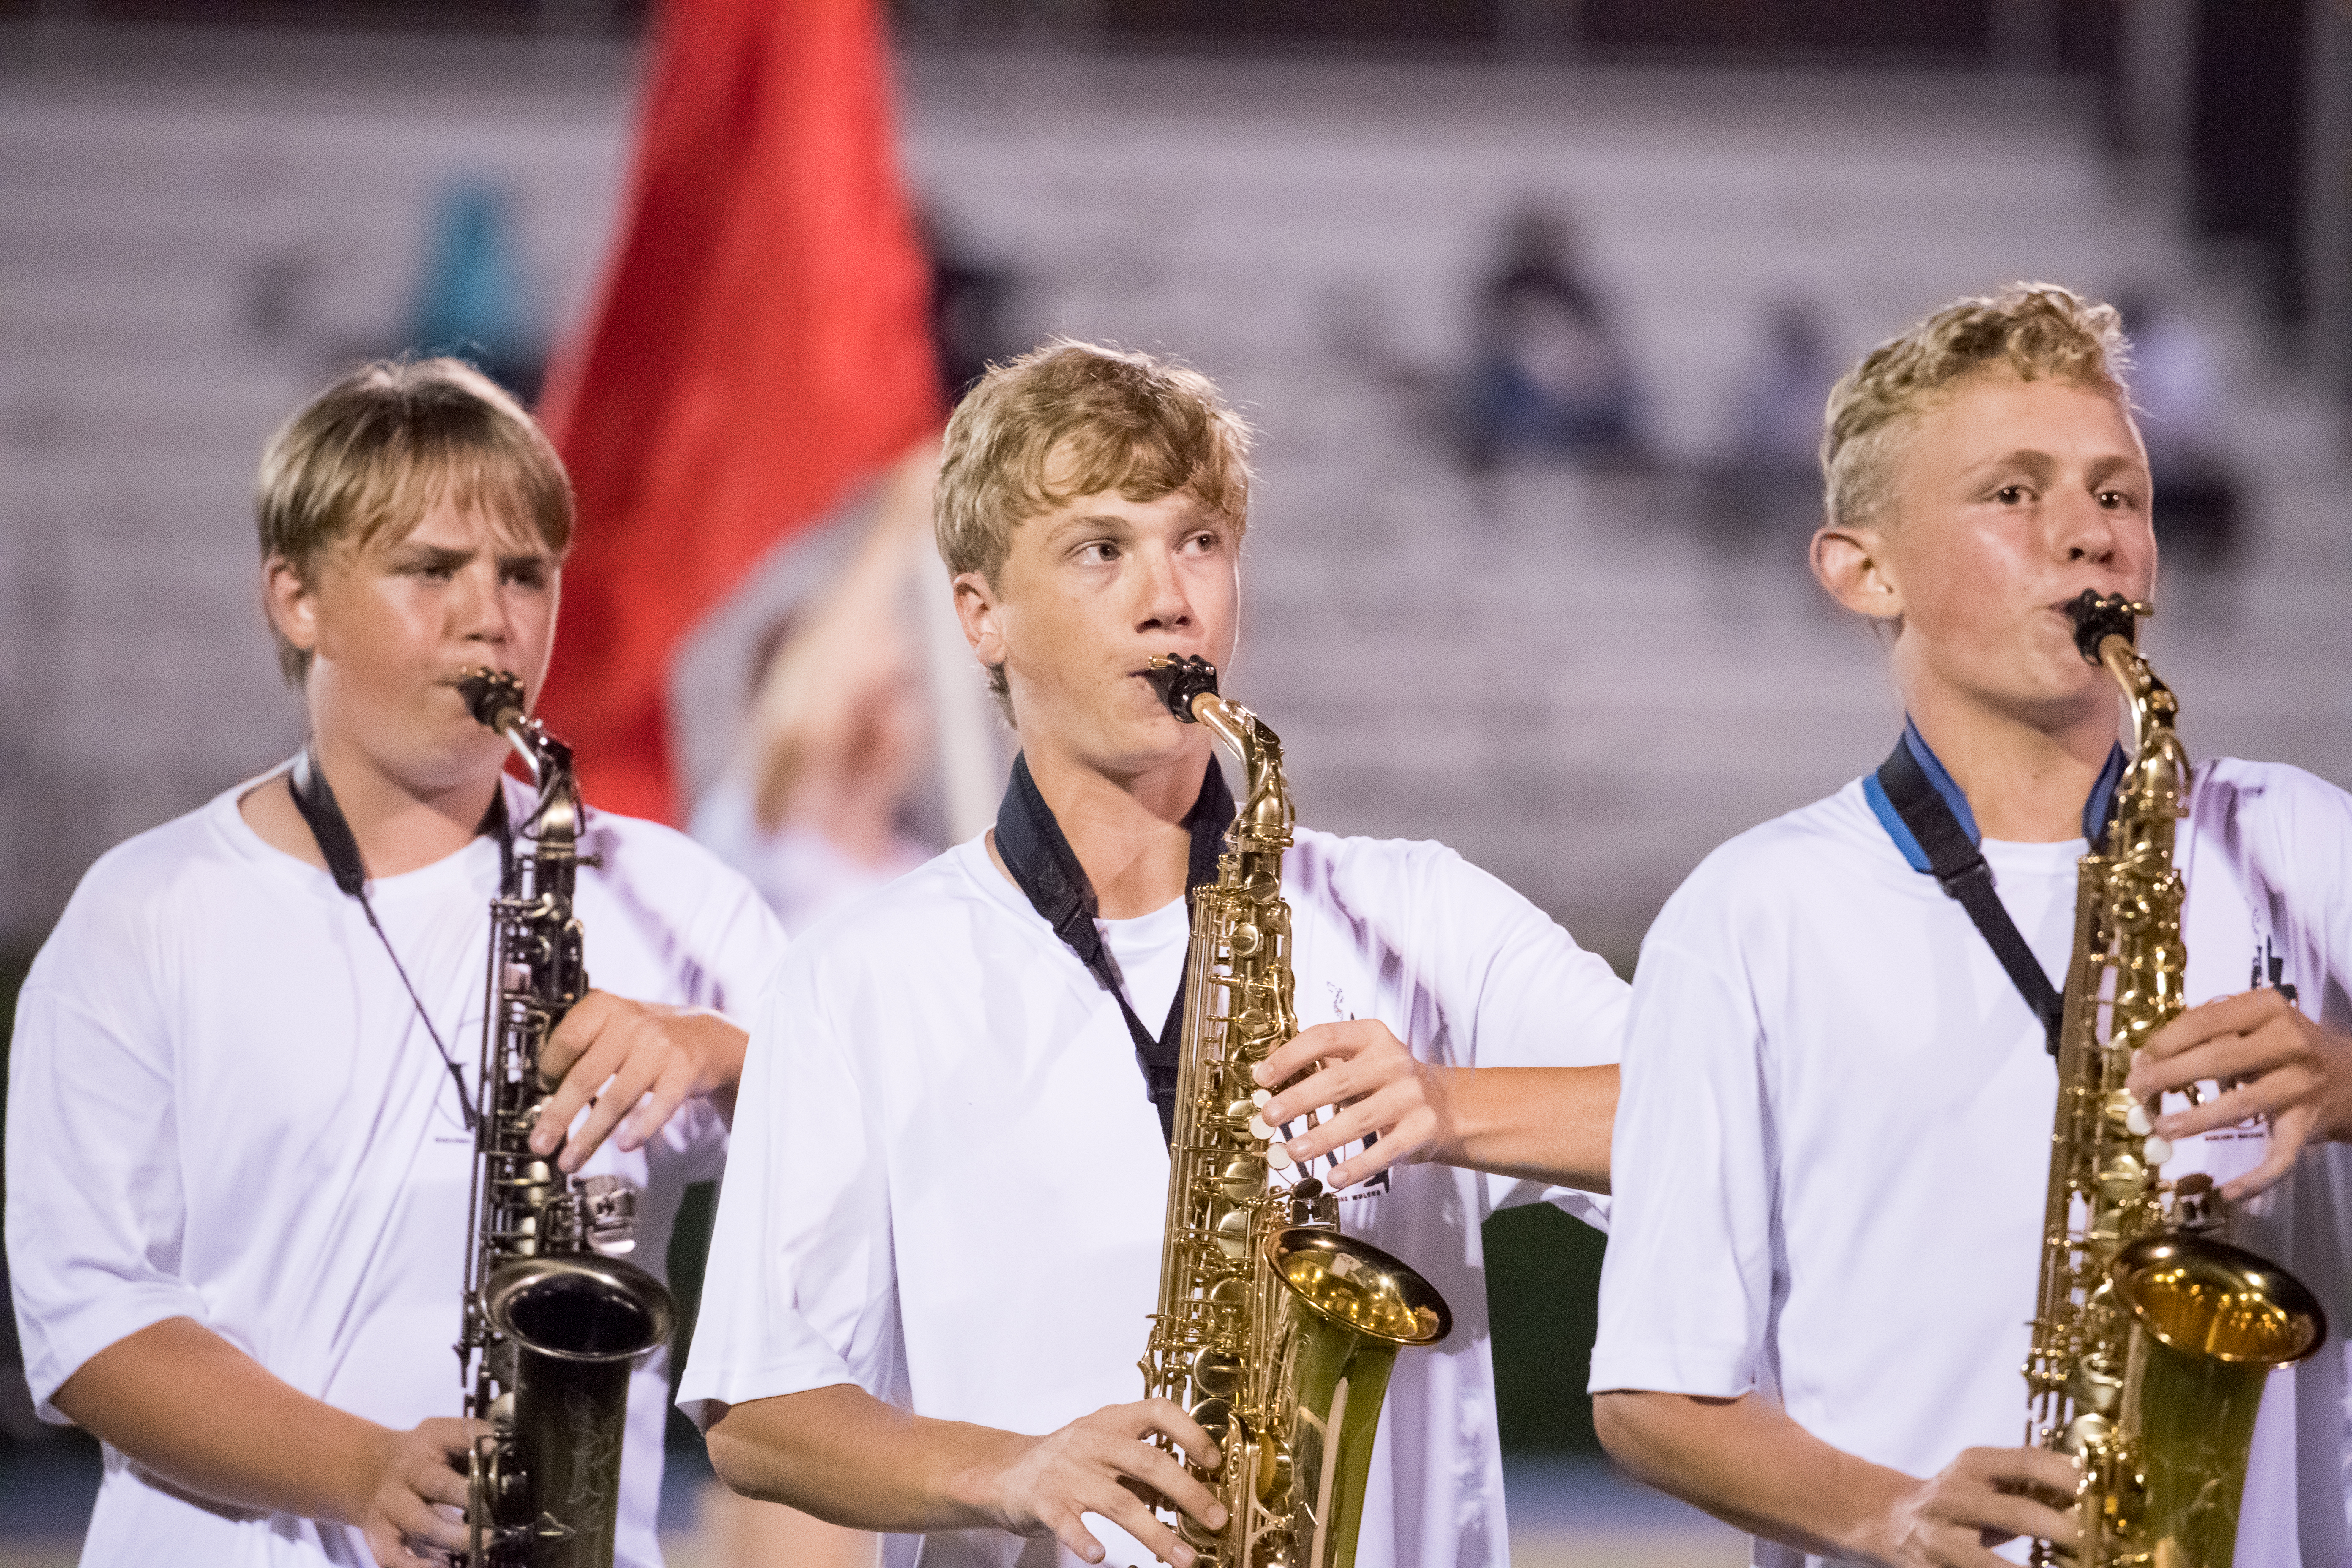 marching-band-color-photo-1.jpg